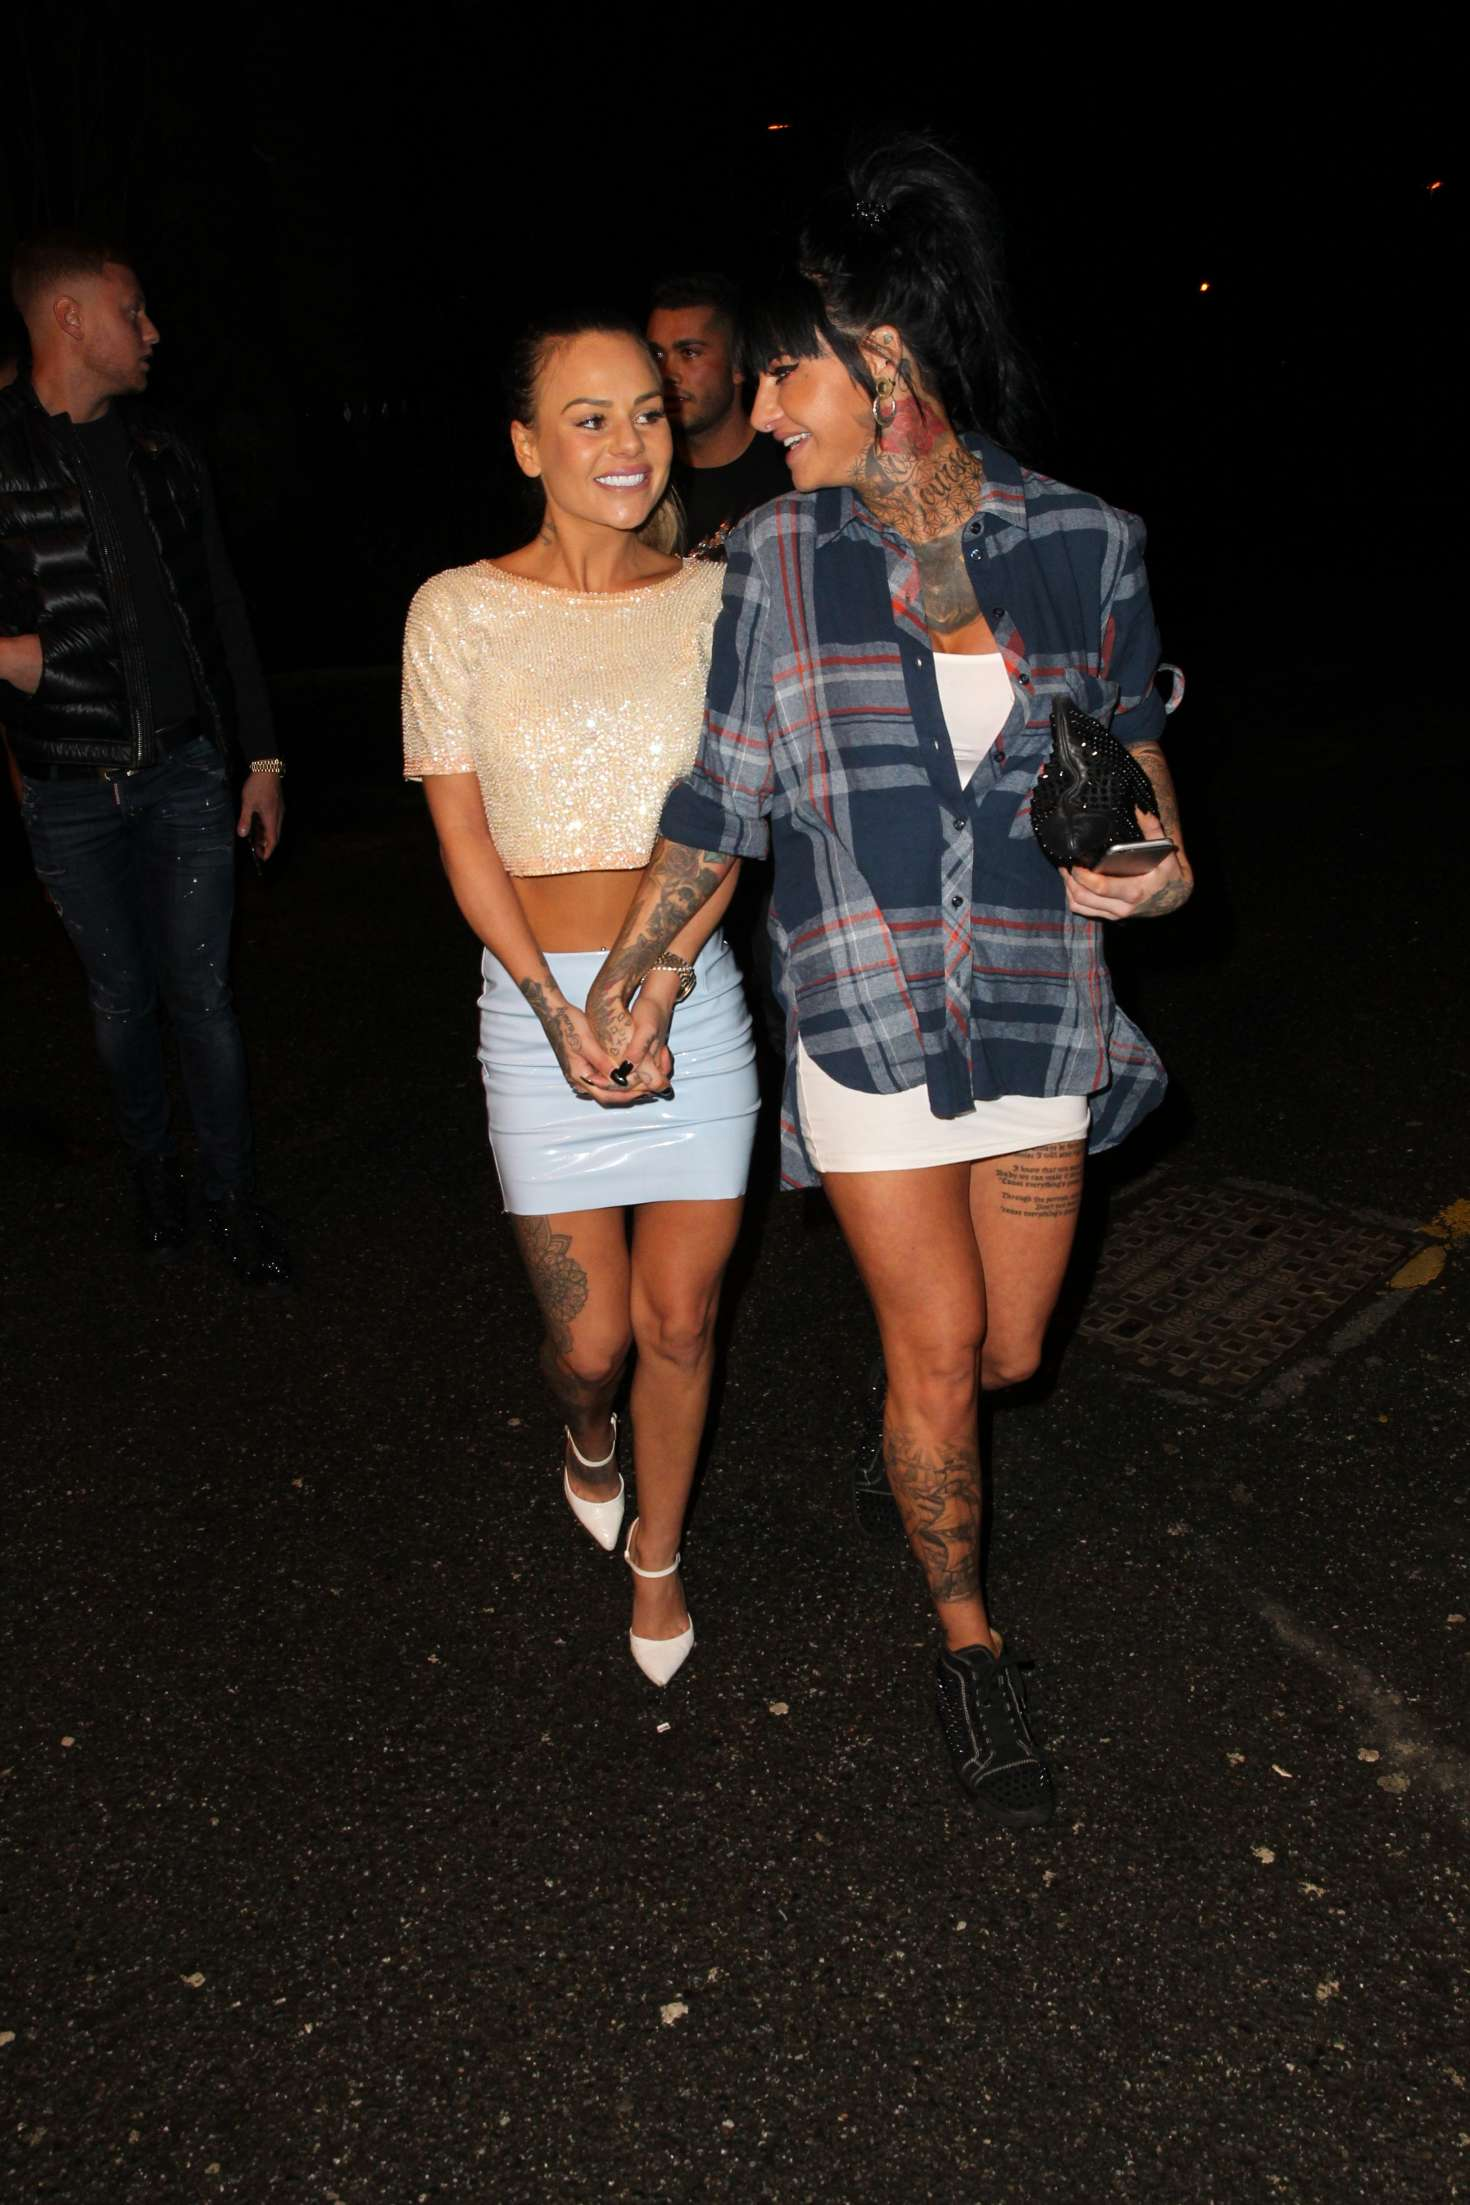 Paparazzi Jemma Lucy and Chantelle Connelly nudes (82 foto and video), Tits, Paparazzi, Twitter, lingerie 2018